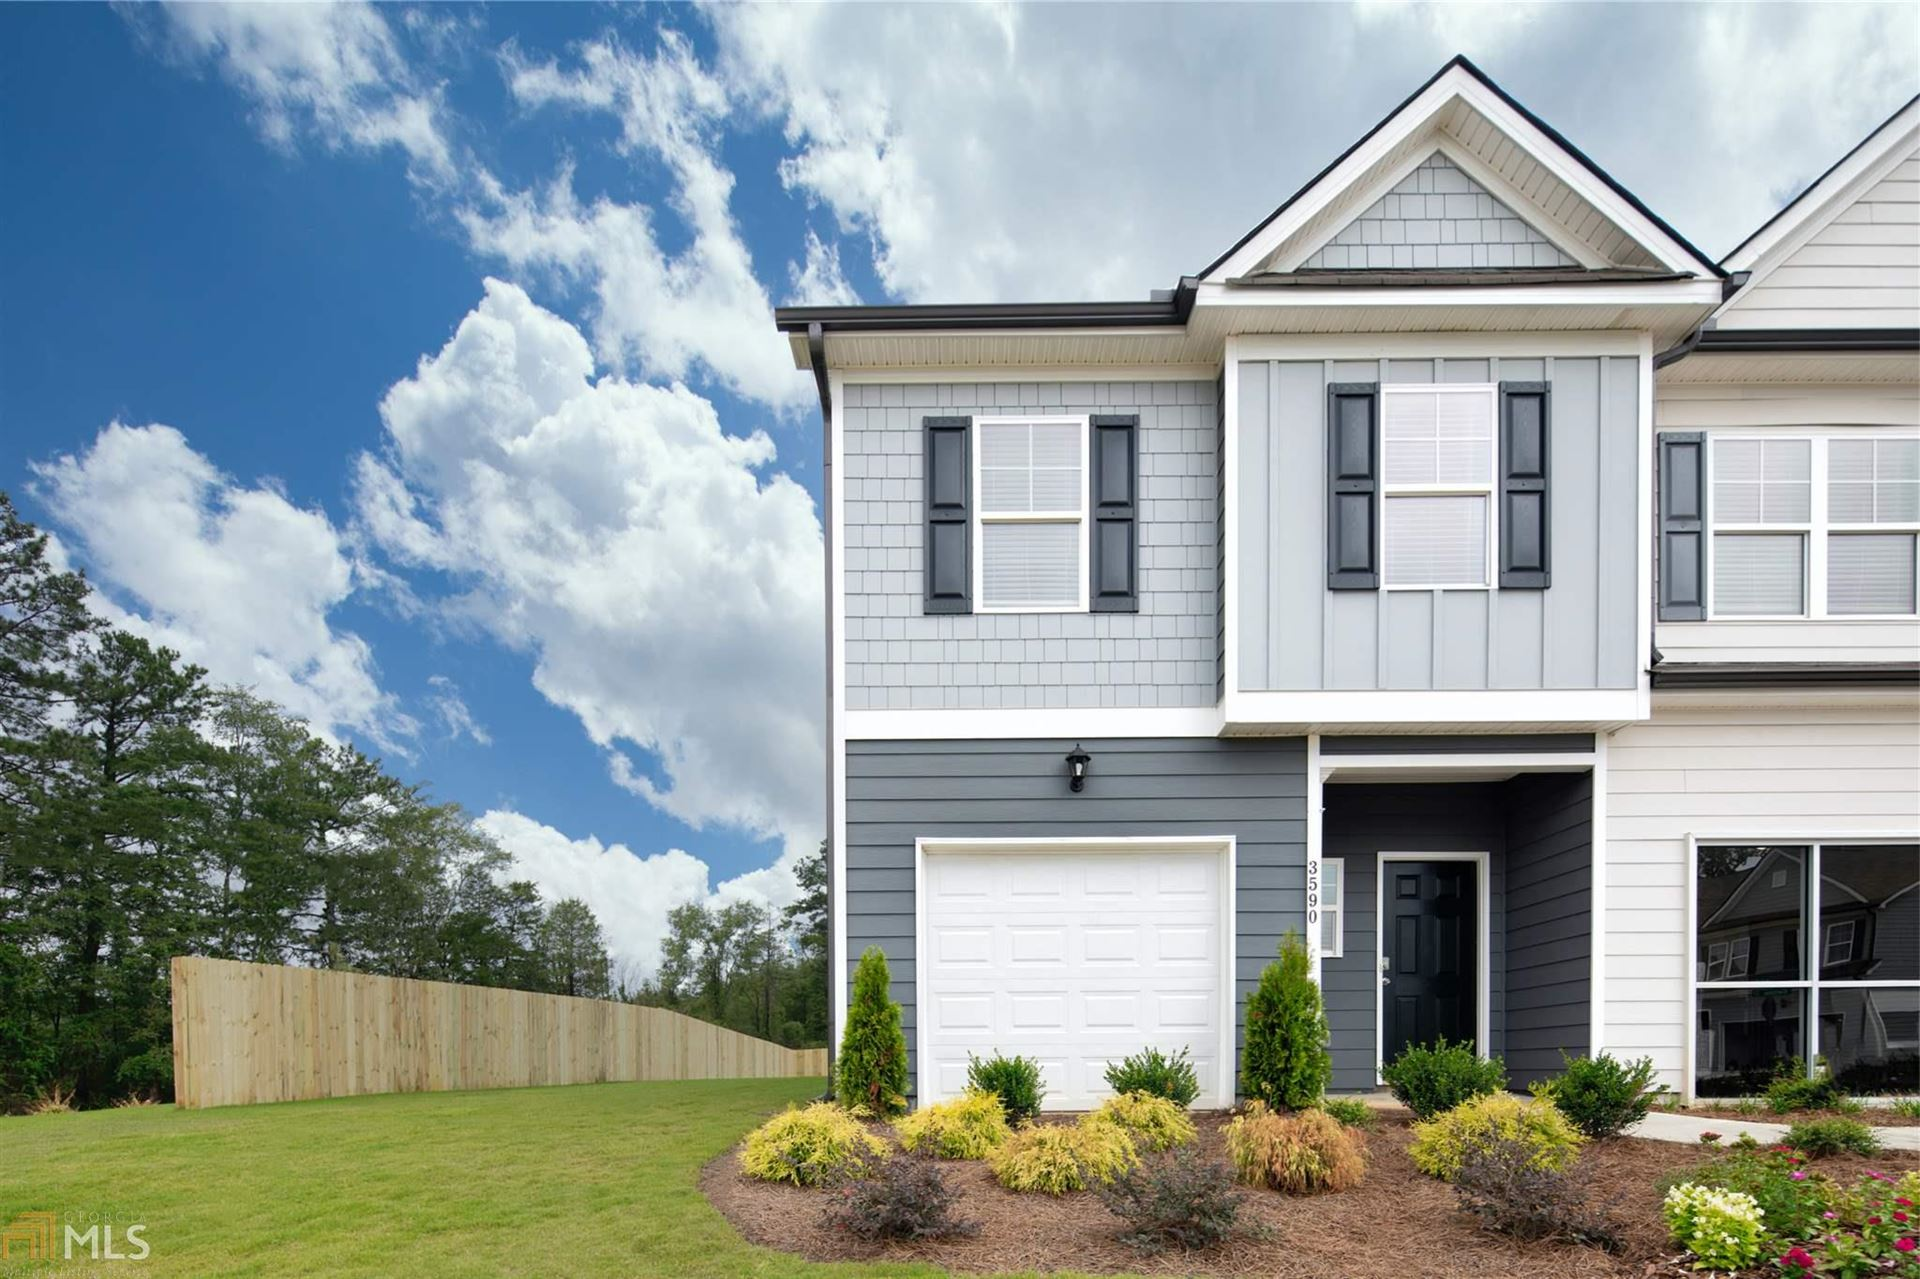 3418 Gladstone Cir, Lithonia, GA 30038 - MLS#: 8867896